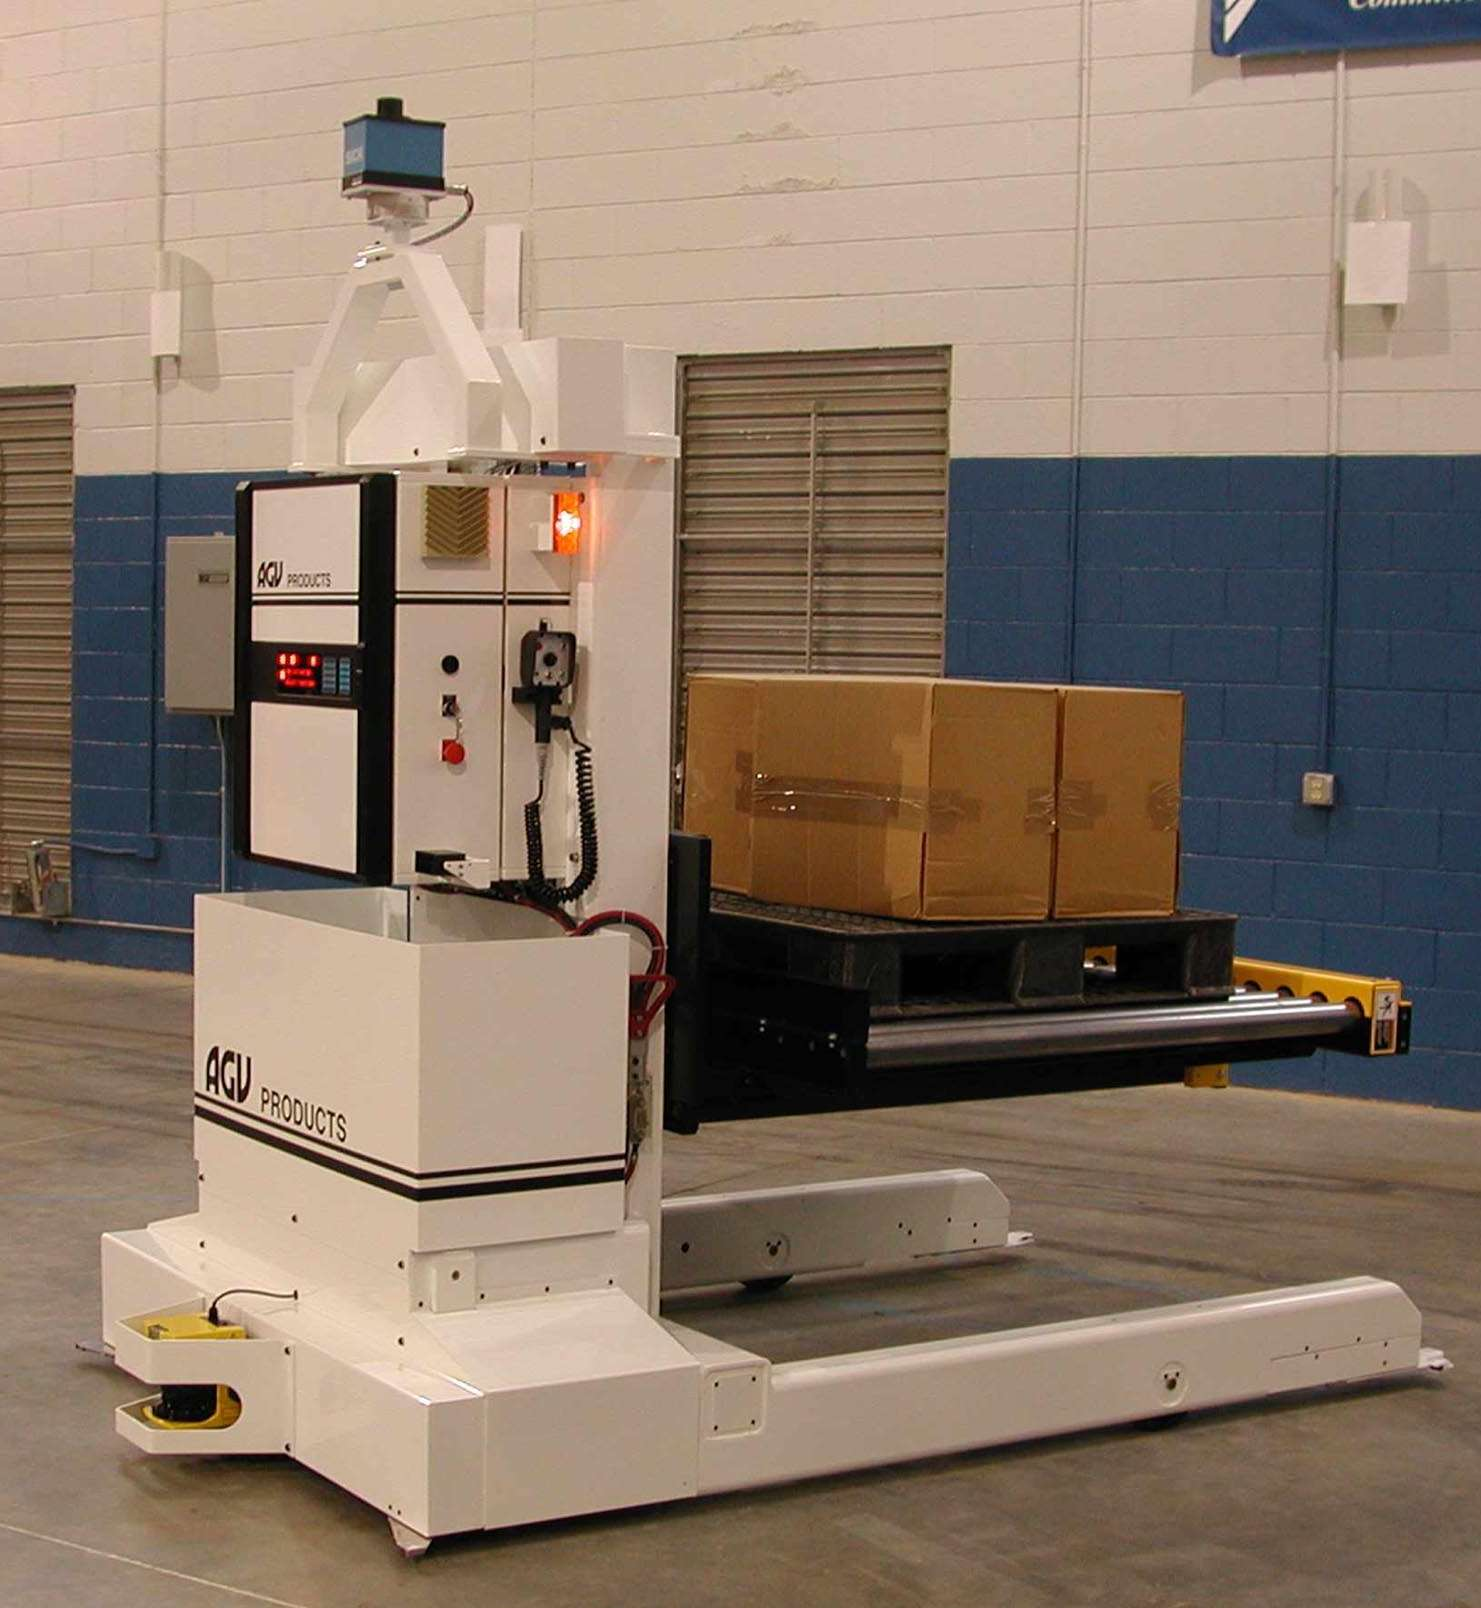 Agv Products Displays New Ergonomically Designed Laser